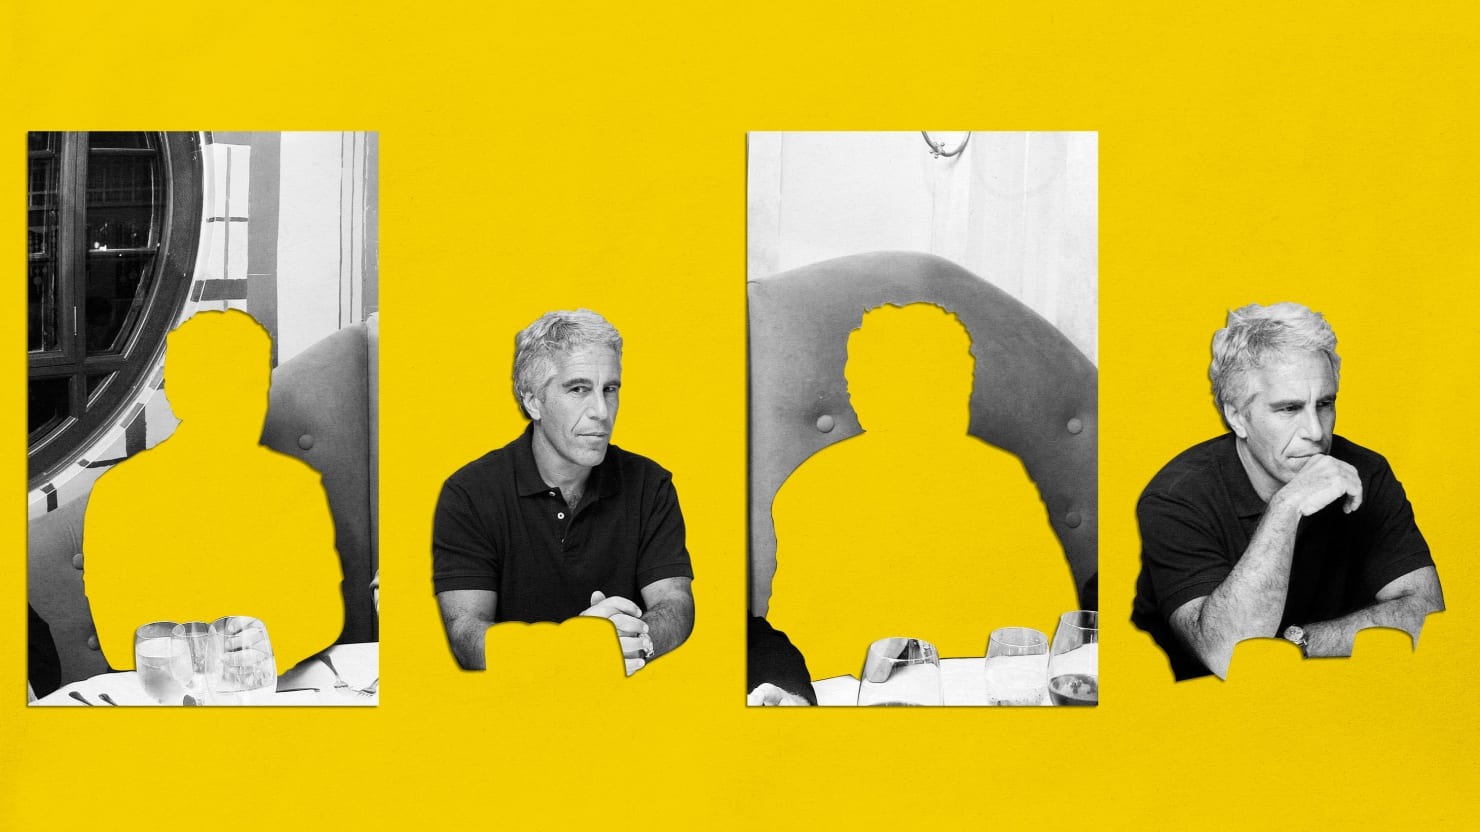 Former IRS Agent: Here's How I'd Investigate Jeffrey Epstein's Finances